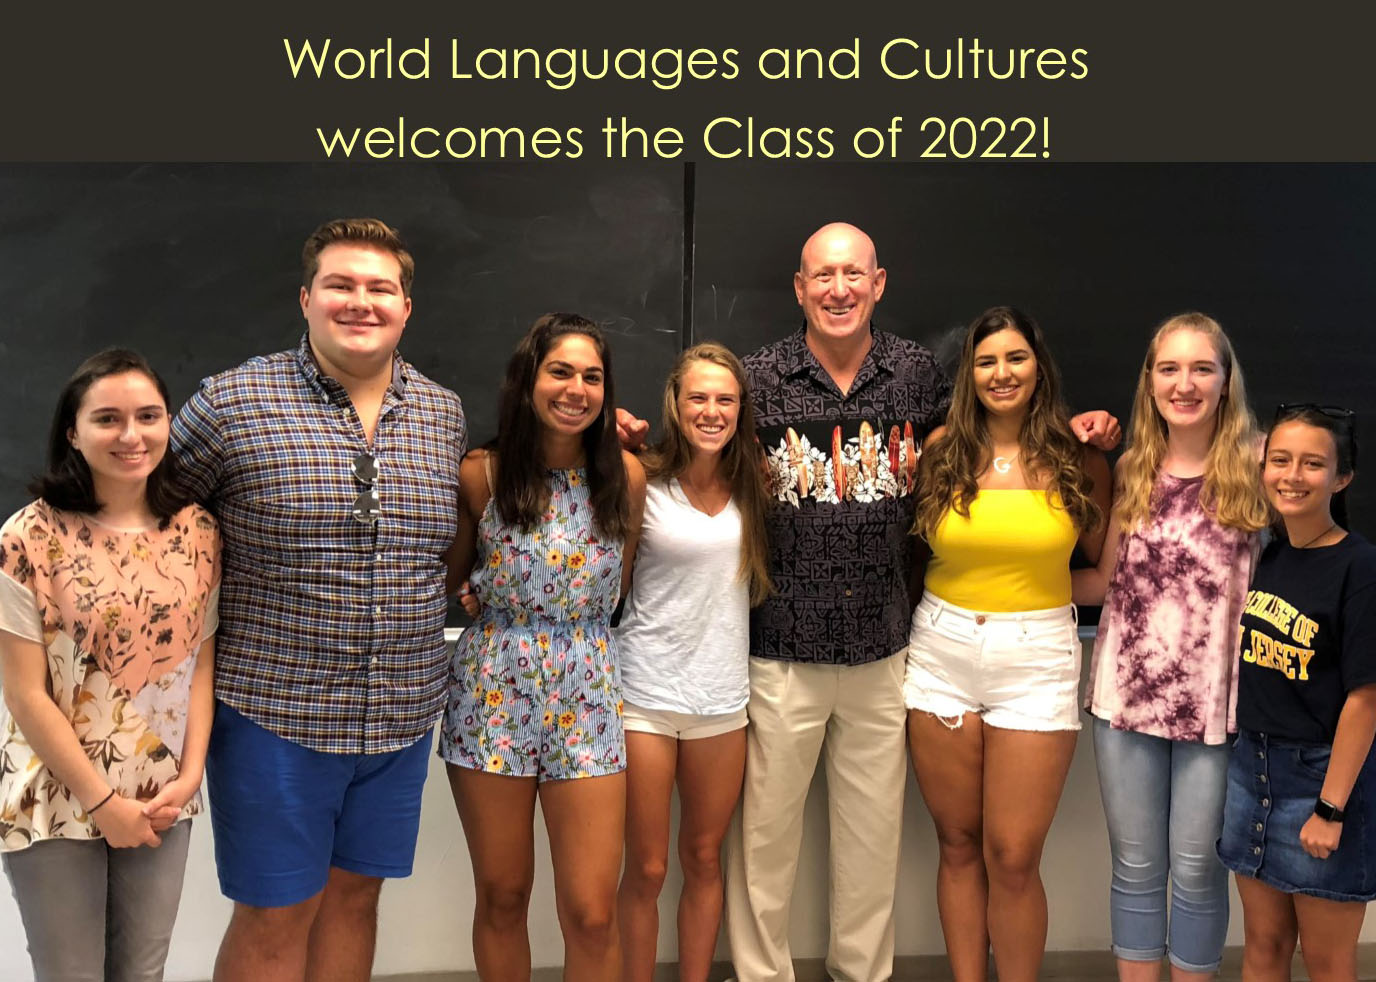 Tcnj Academic Calendar 2022.Welcome To The Class Of 2022 Department Of World Languages And Culture